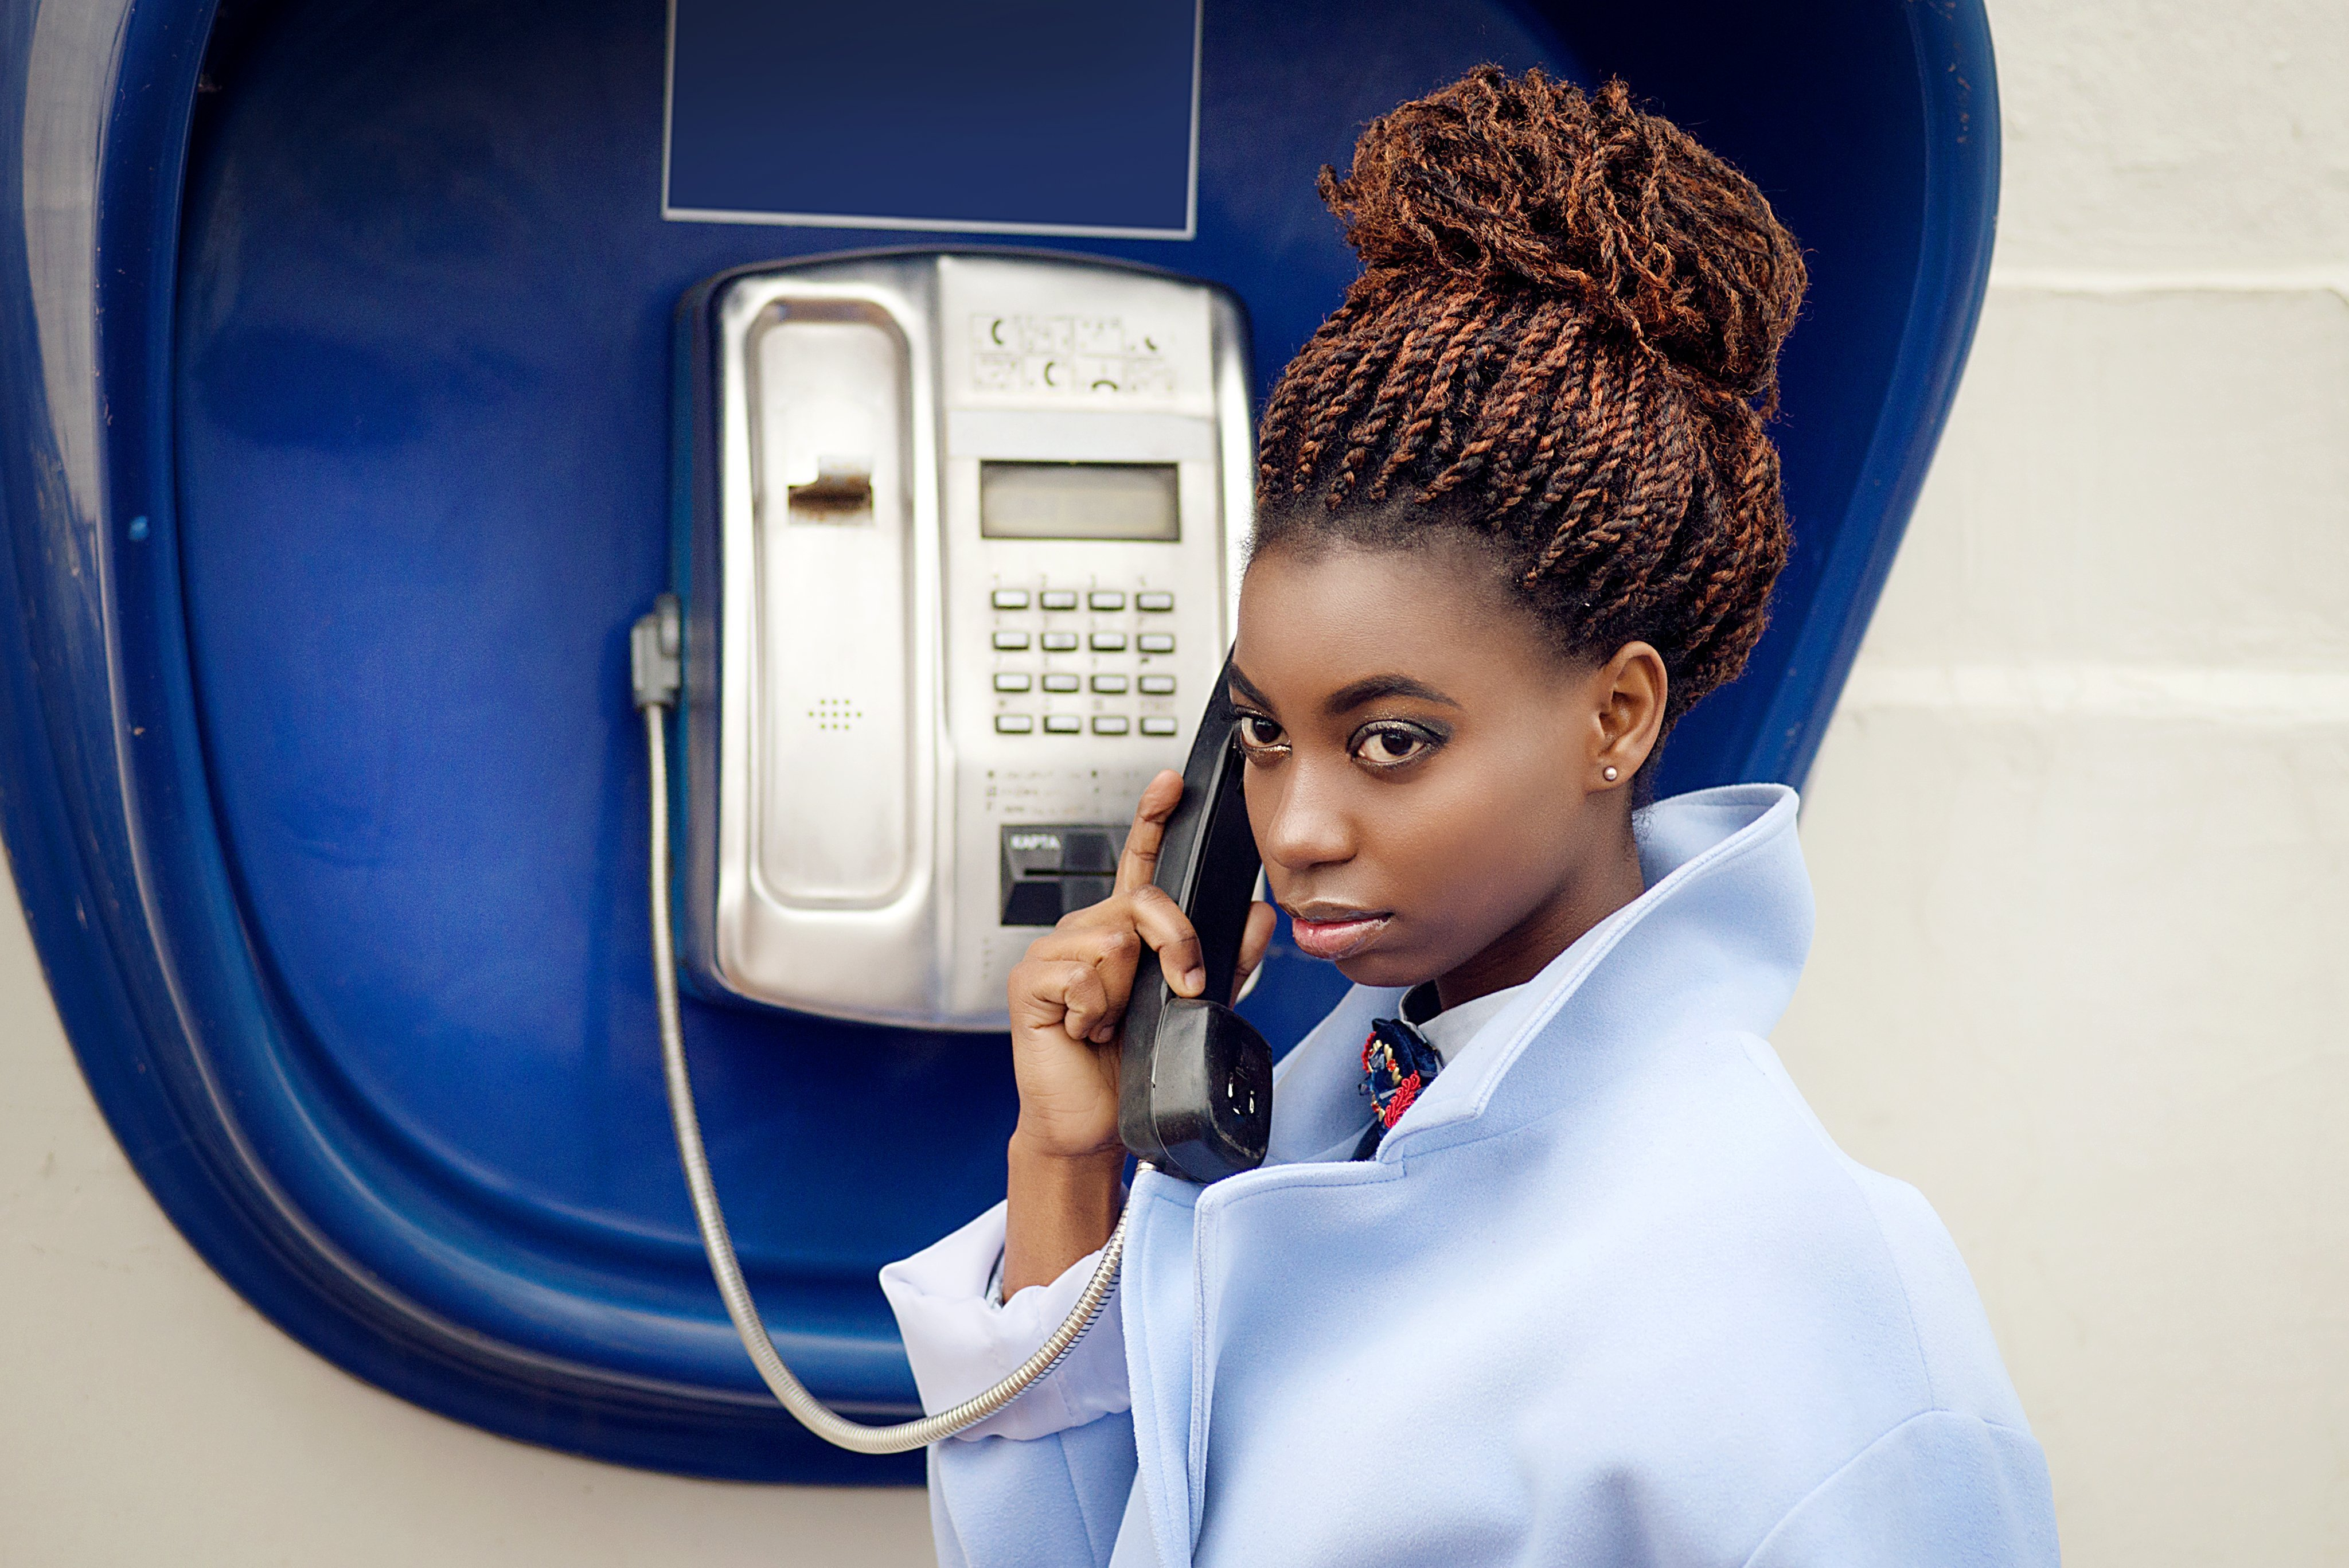 Young girl using a payphone | Photo: Shutterstock